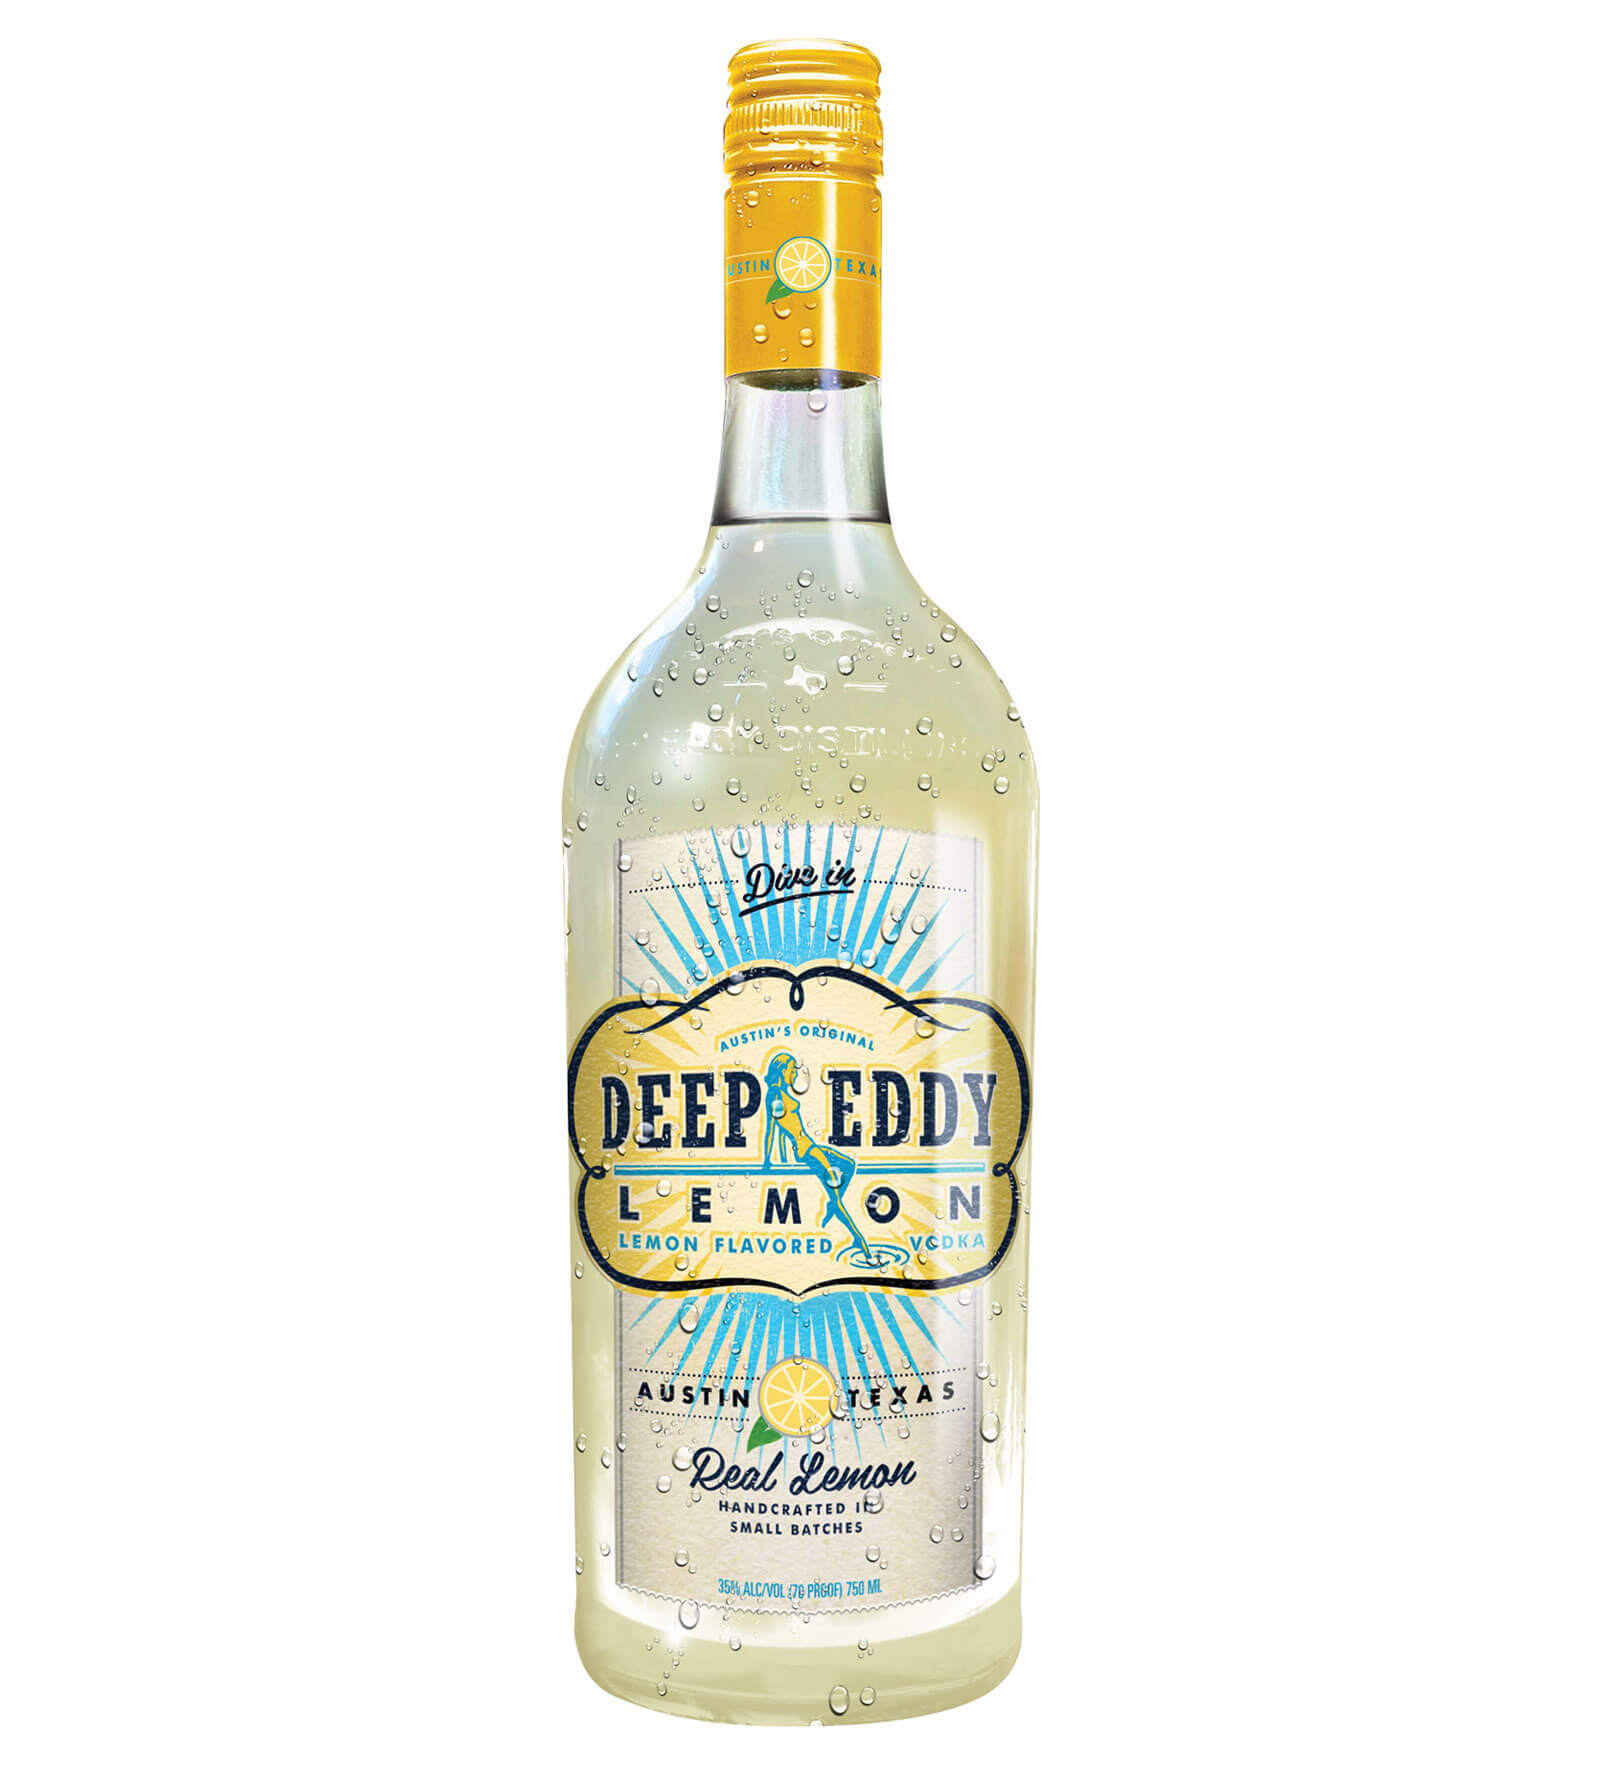 Deep Eddy Lemon Vodka, bottle on white